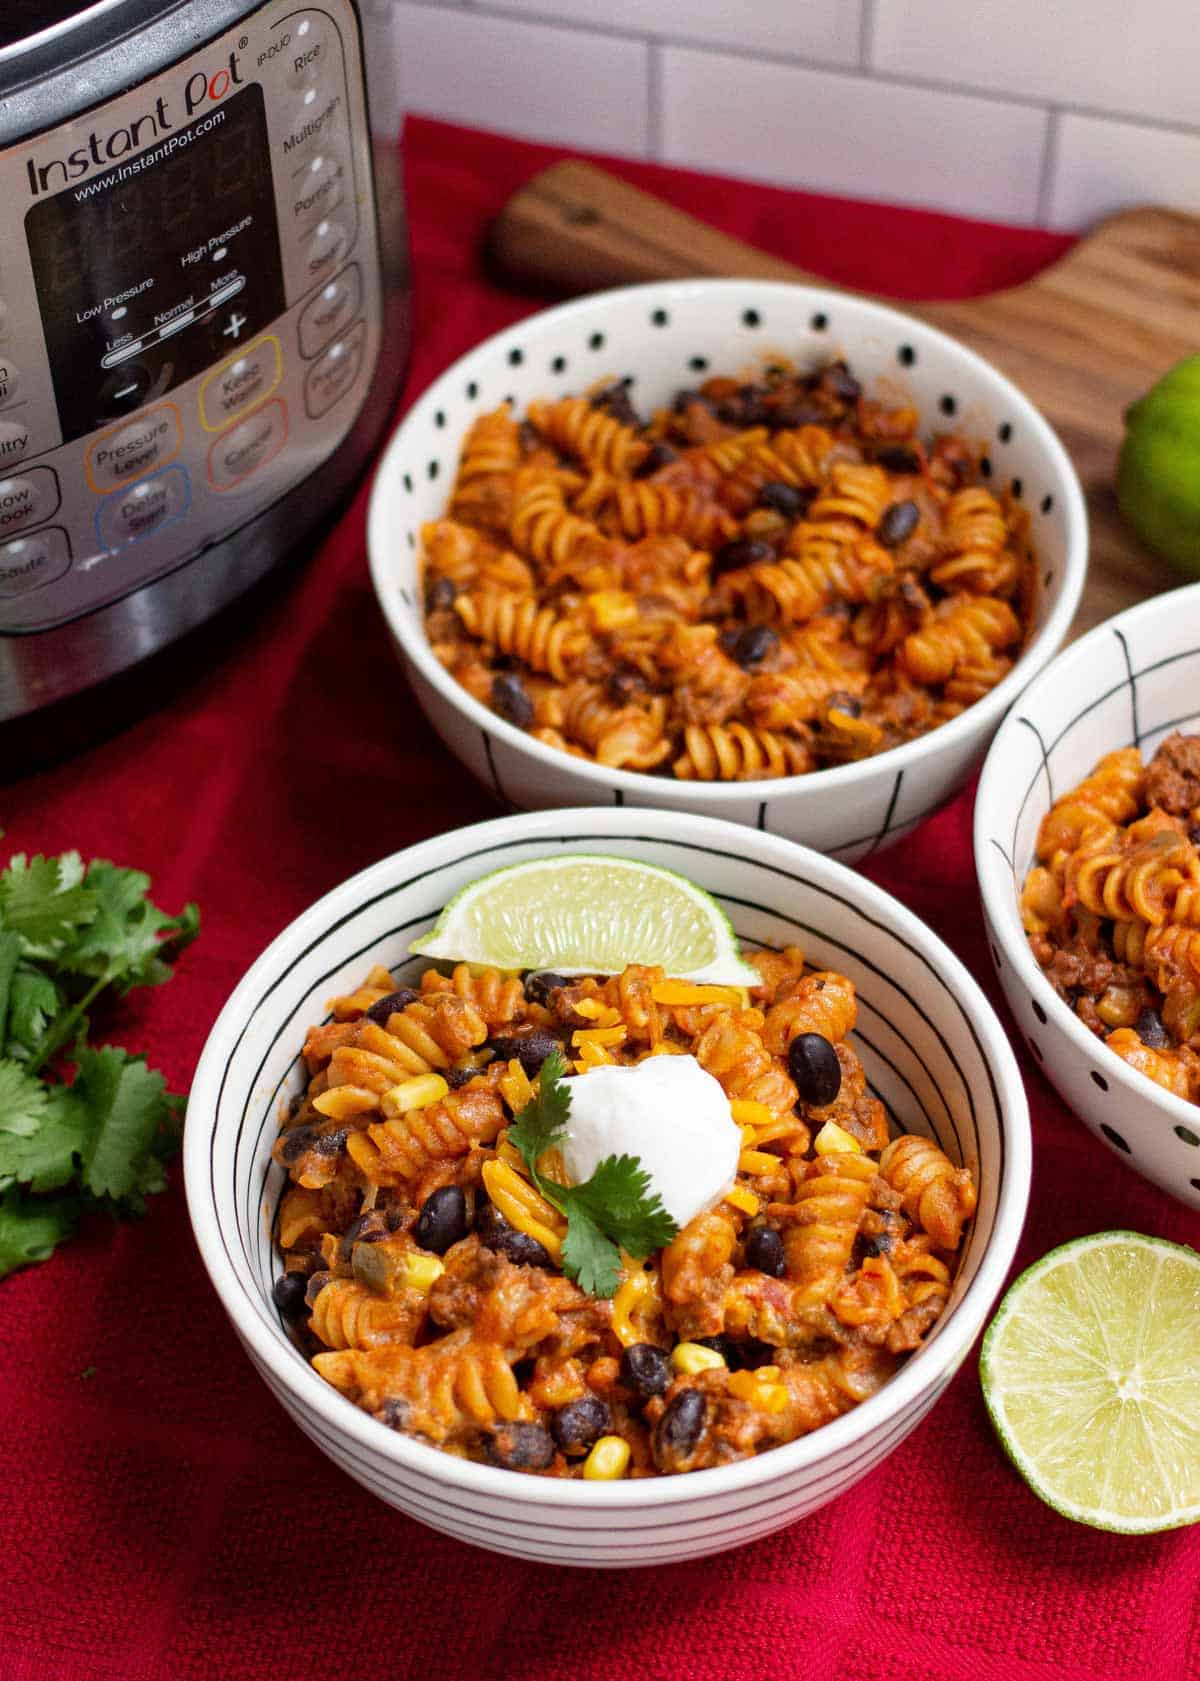 Three bowls of taco pasta topped with a dollop of sour cream, cilantro leaves, and a wedge of lime.